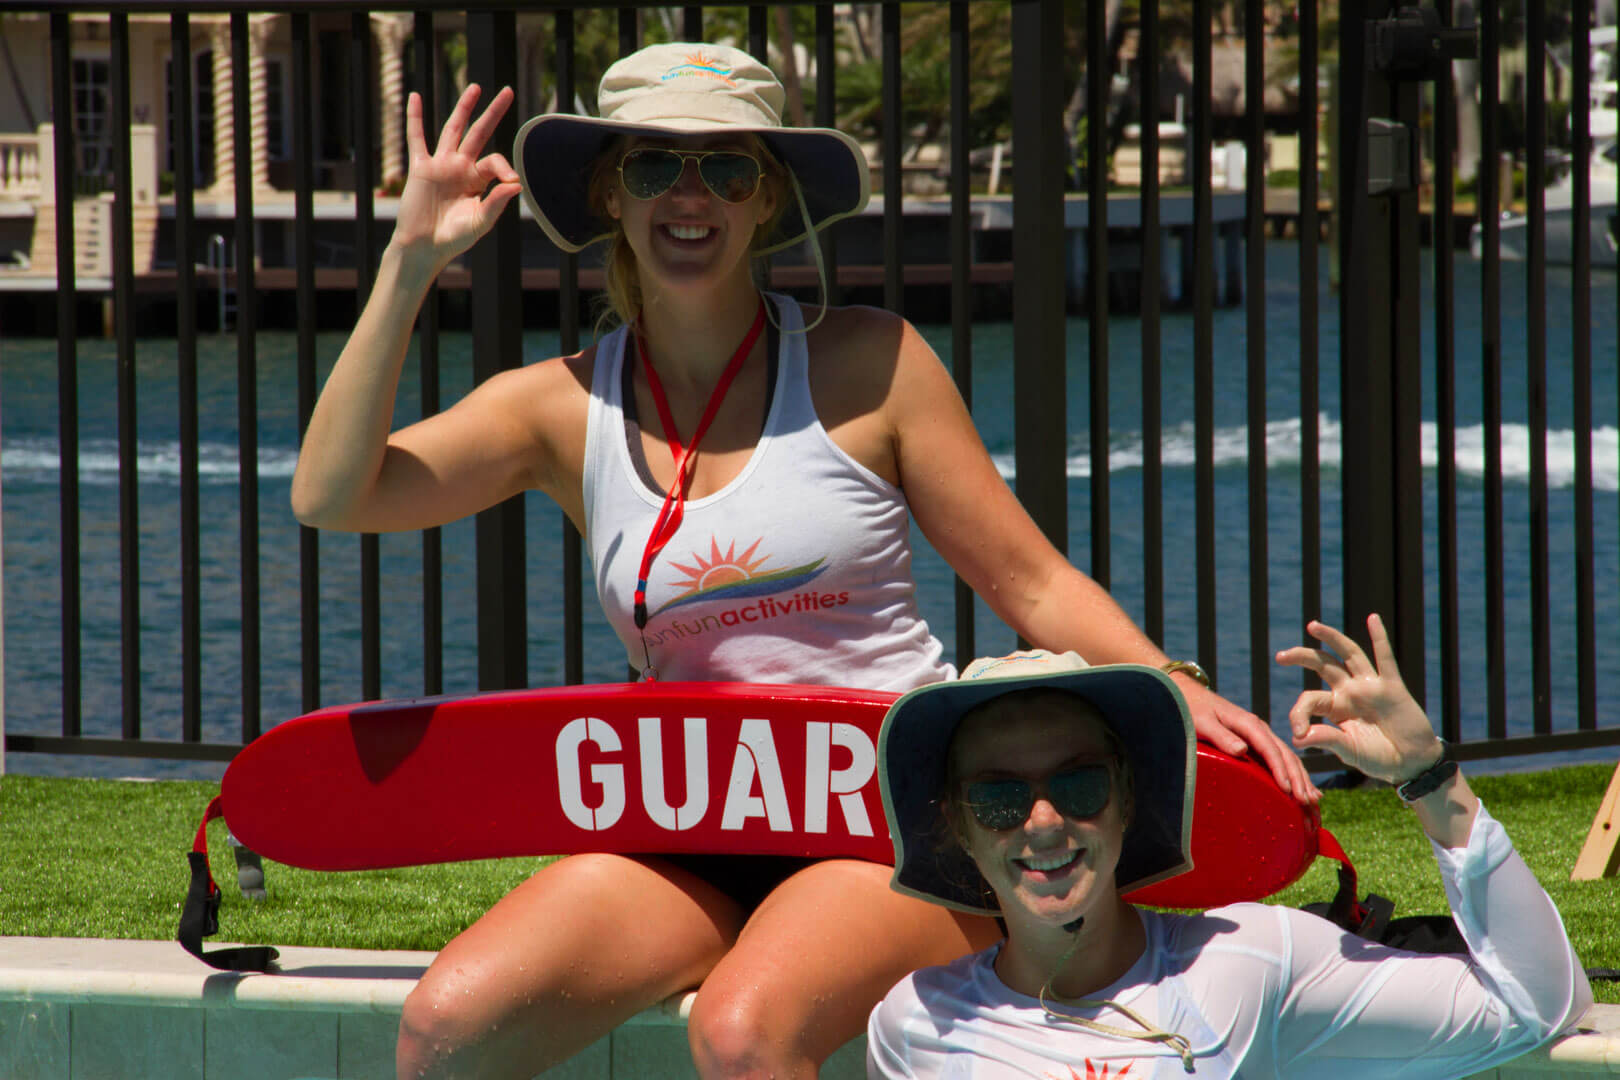 SunFun Activities Emily and Kelsey Stamile Lifeguarding at the Pool